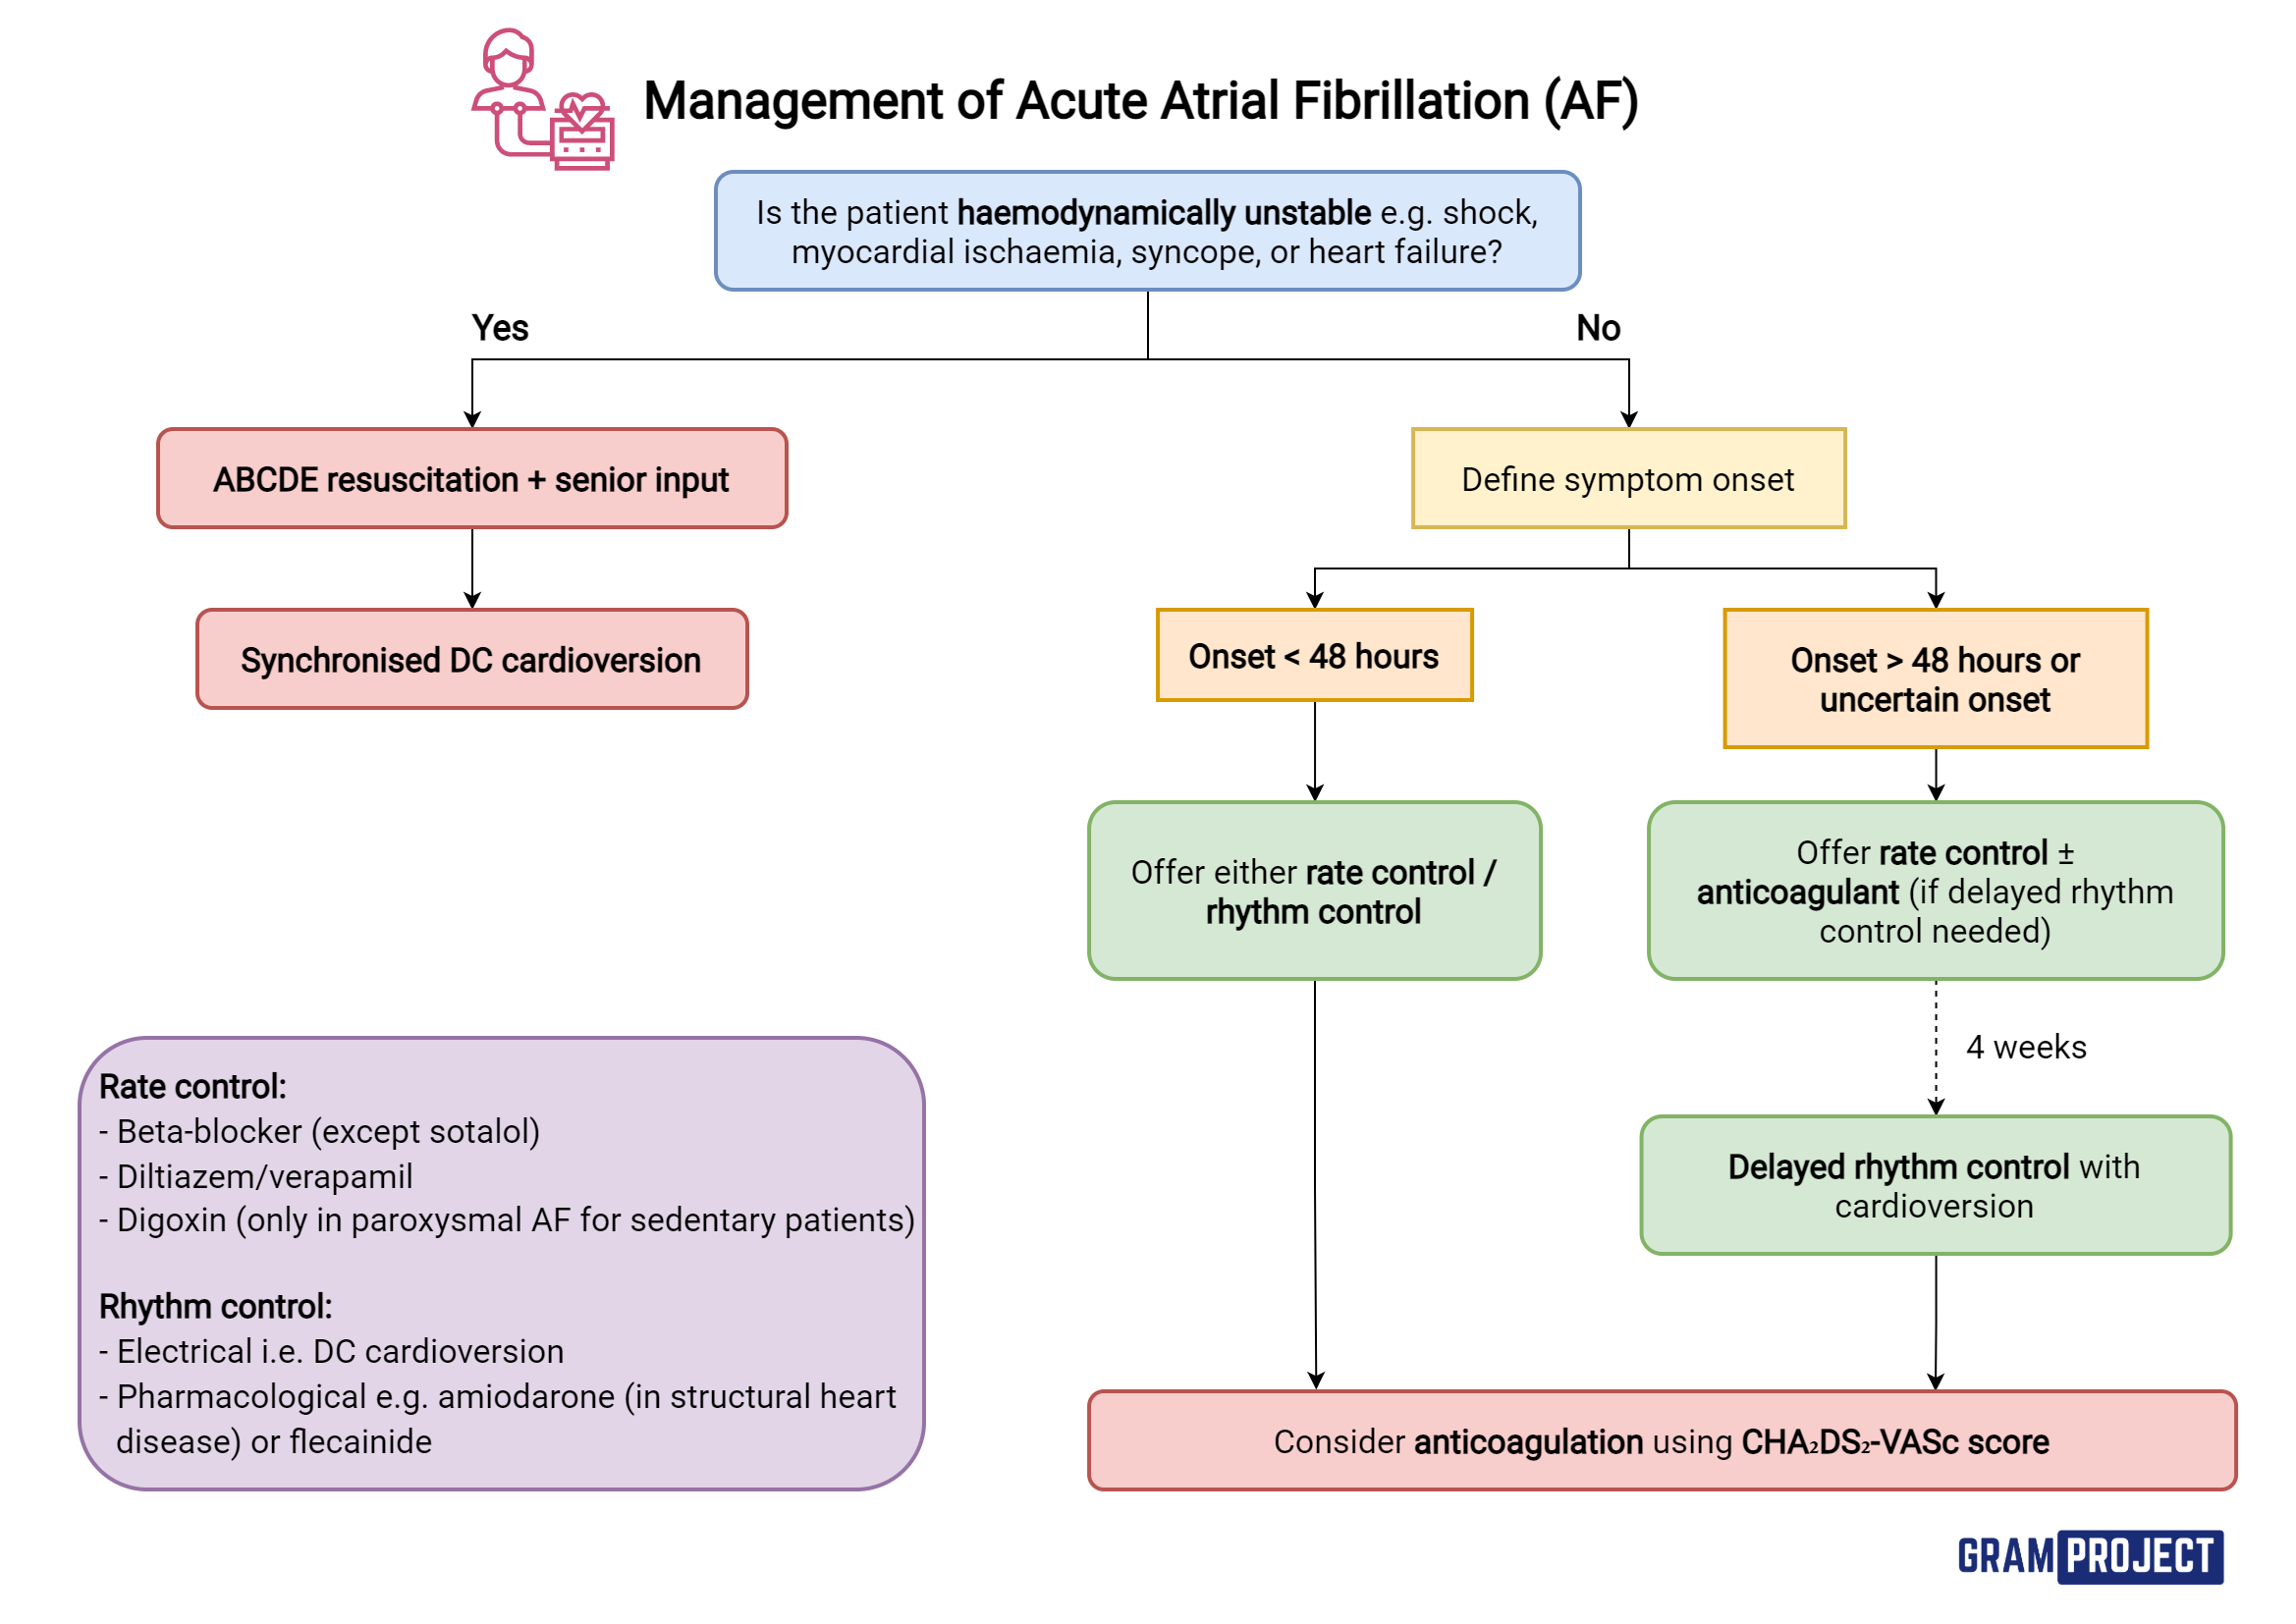 Management of acute atrial fibrillation (AF) based on NICE guidelines